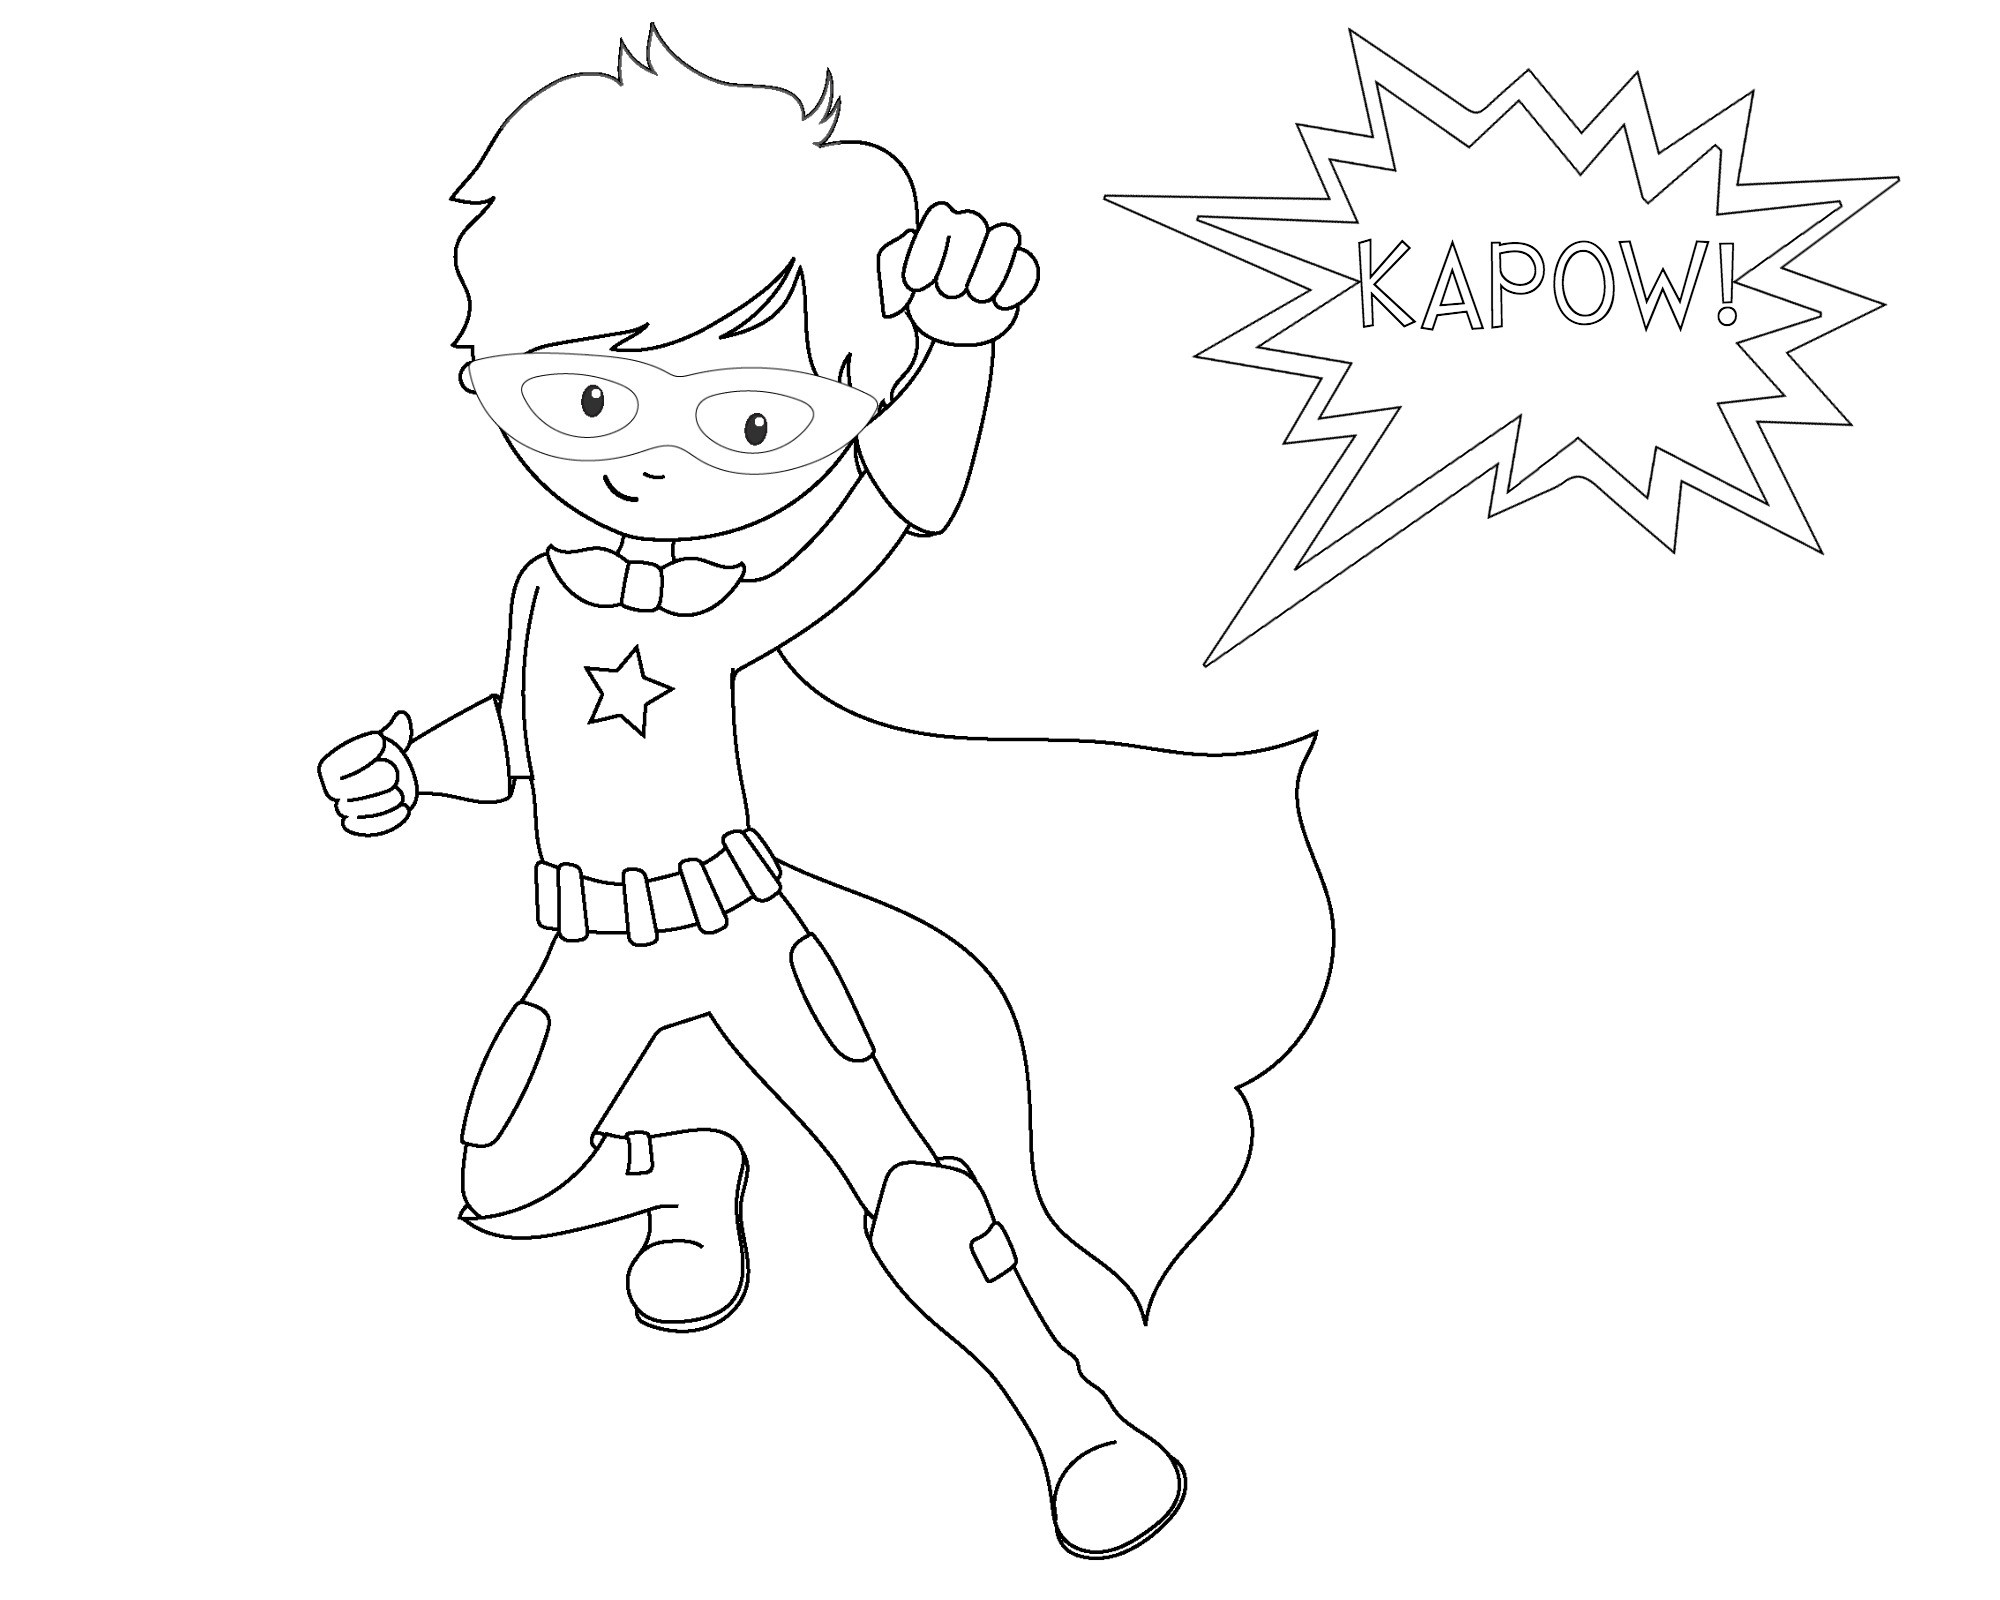 Super Hero Coloring Pages For Kids  Free Printable Superhero Coloring Sheets for Kids Crazy